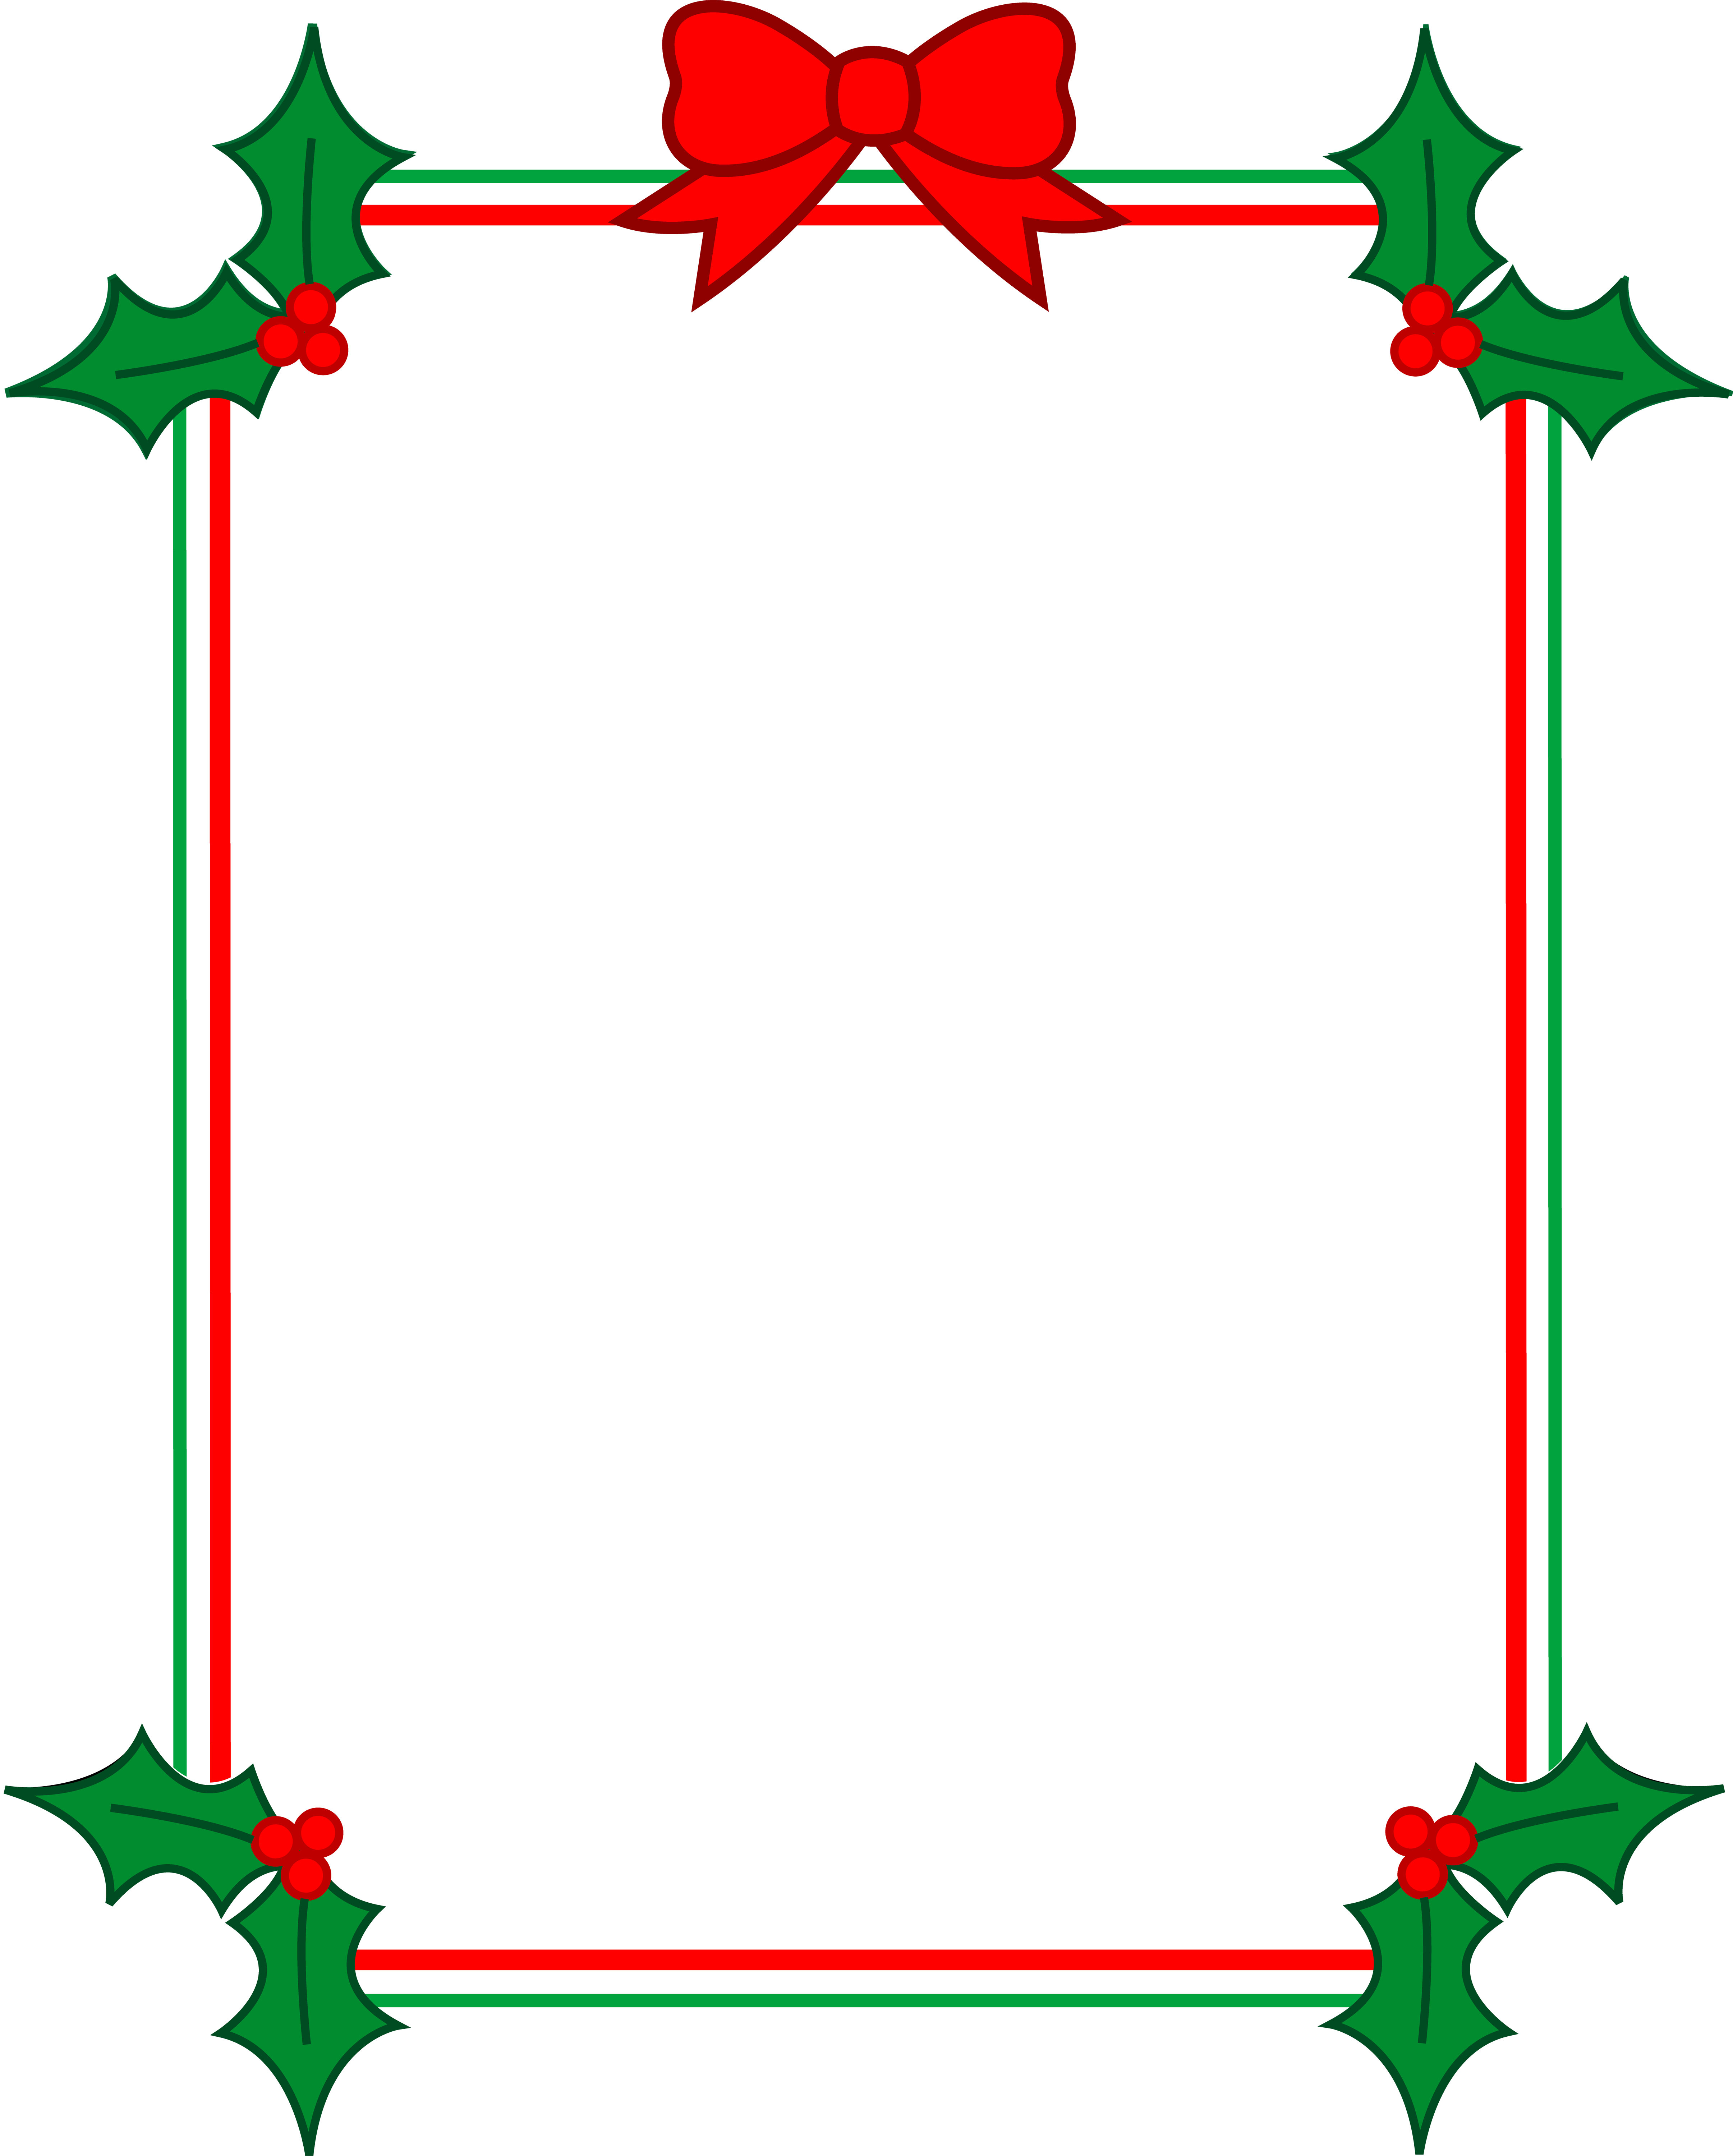 Frame clipart holiday Party Free Holiday Holiday Borders